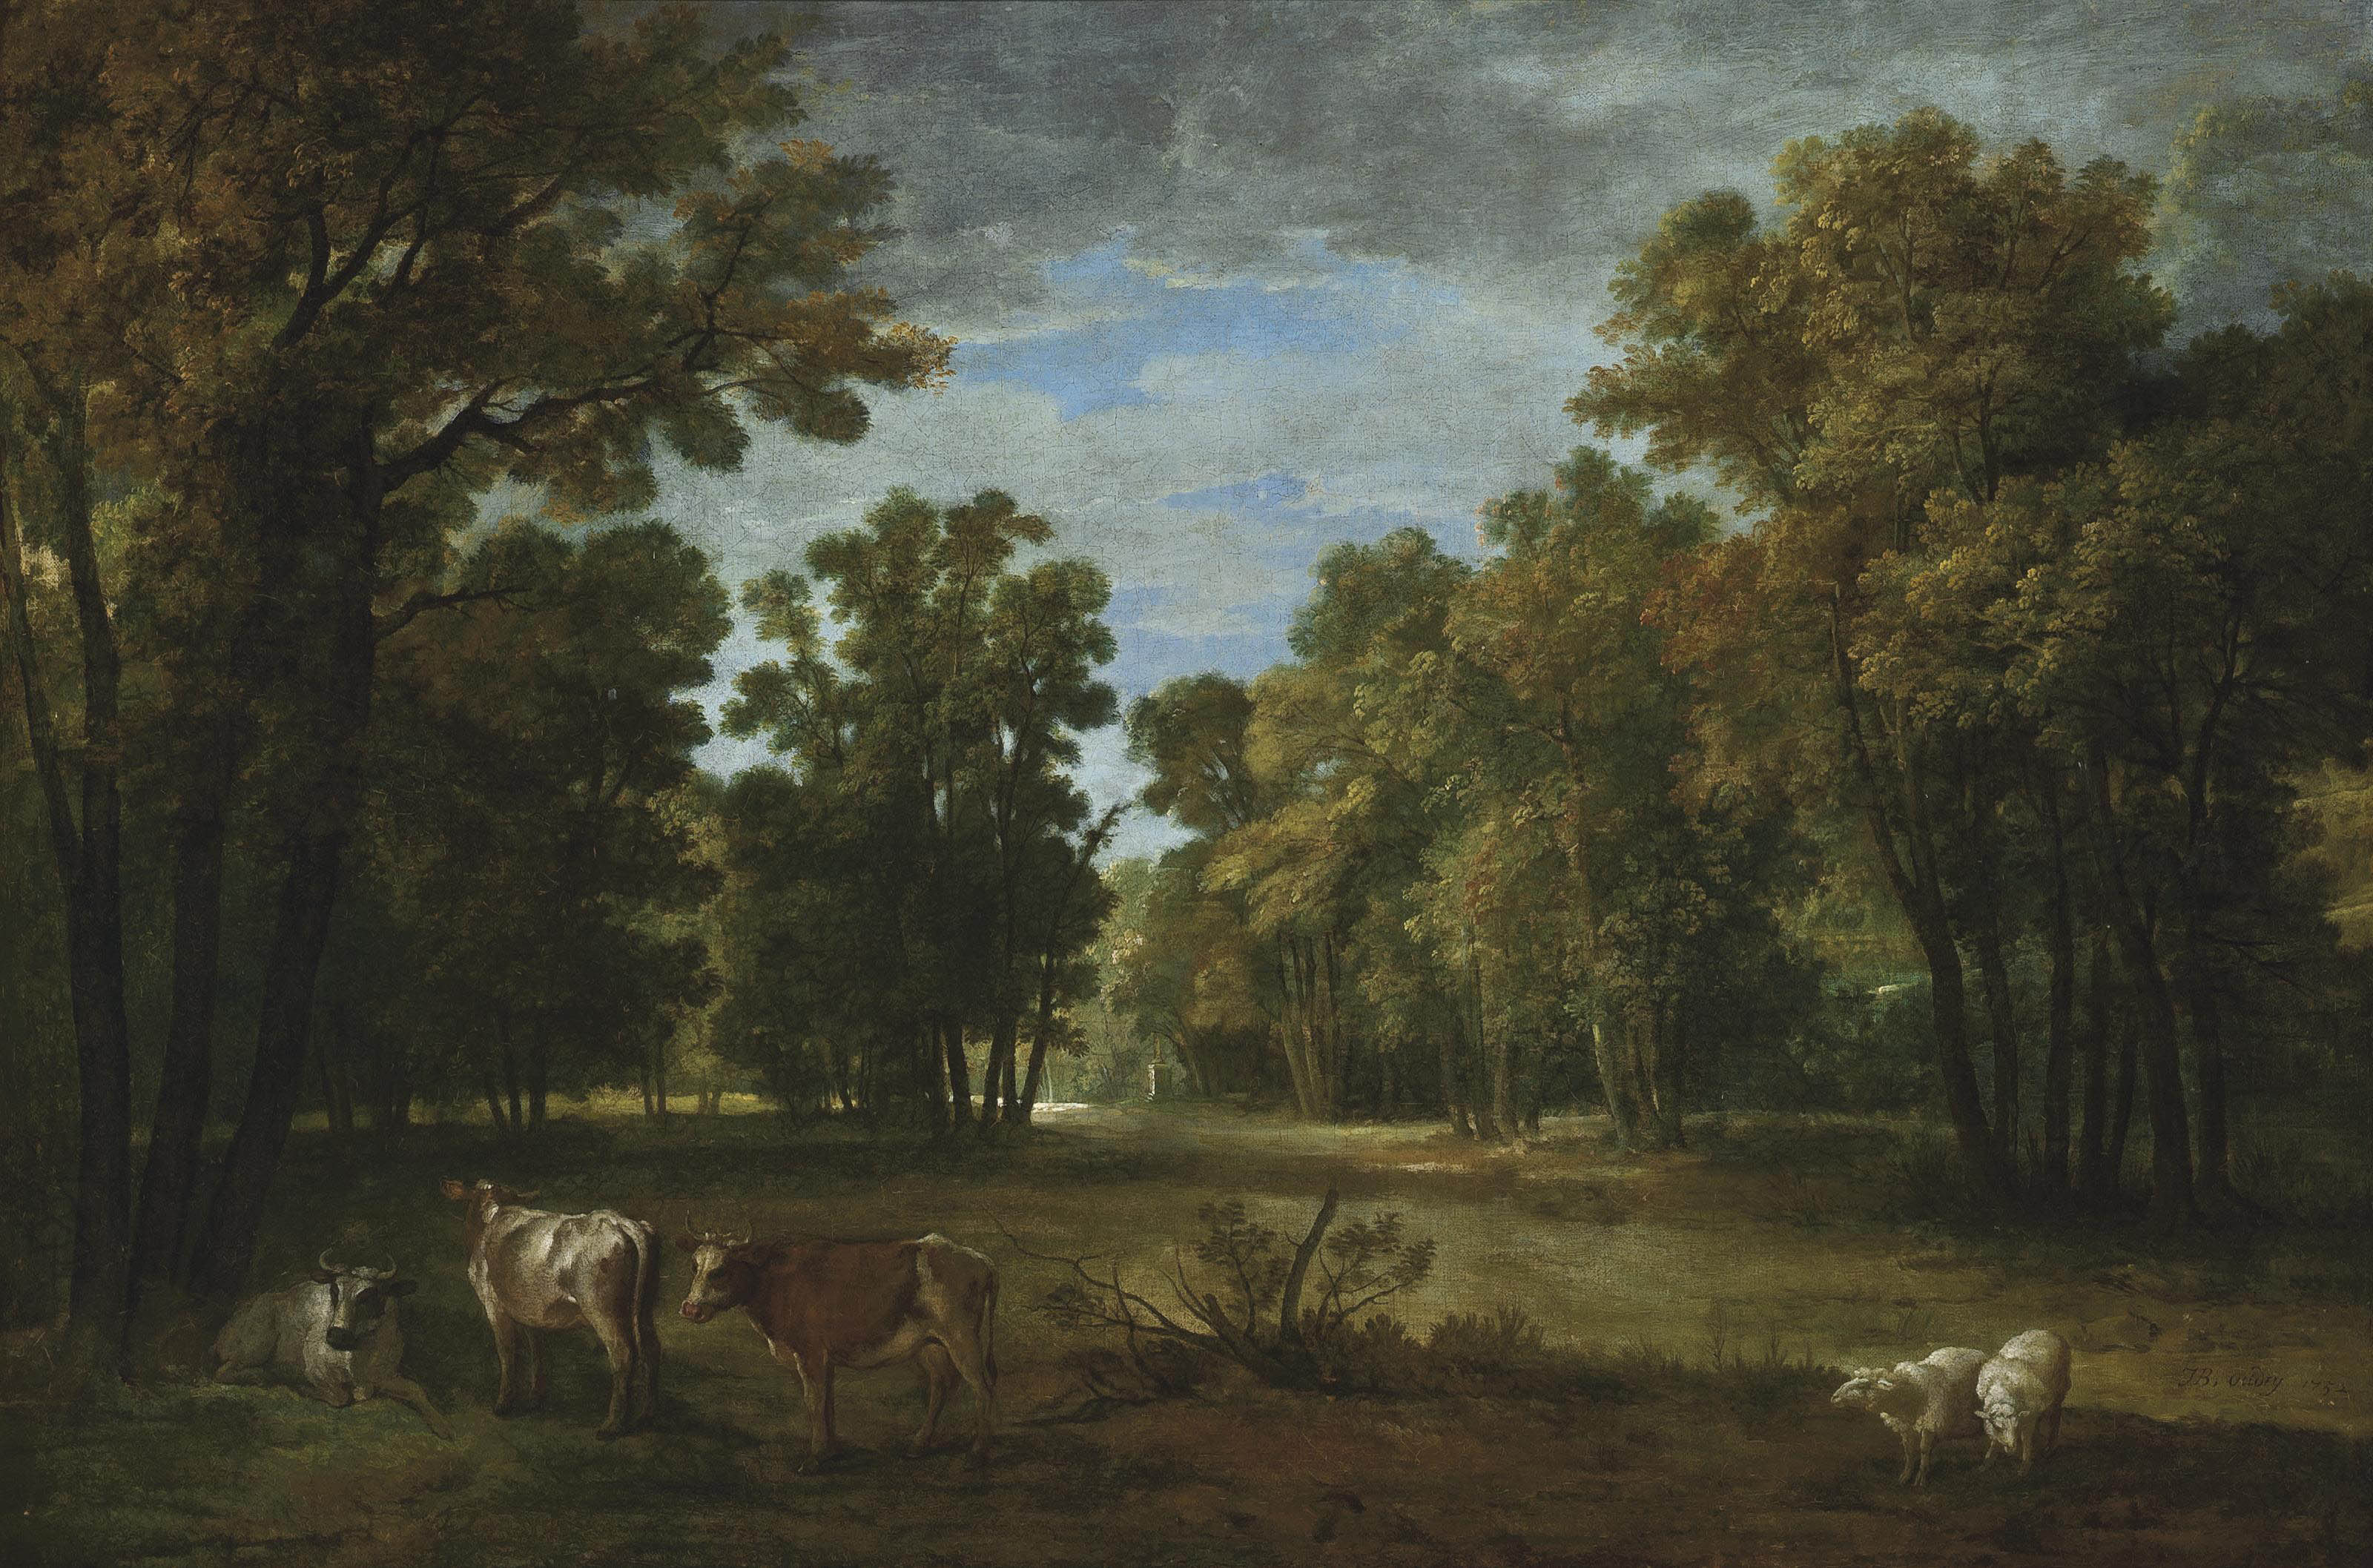 A wooded landscape with cattle and sheep, a statue in the clearing beyond